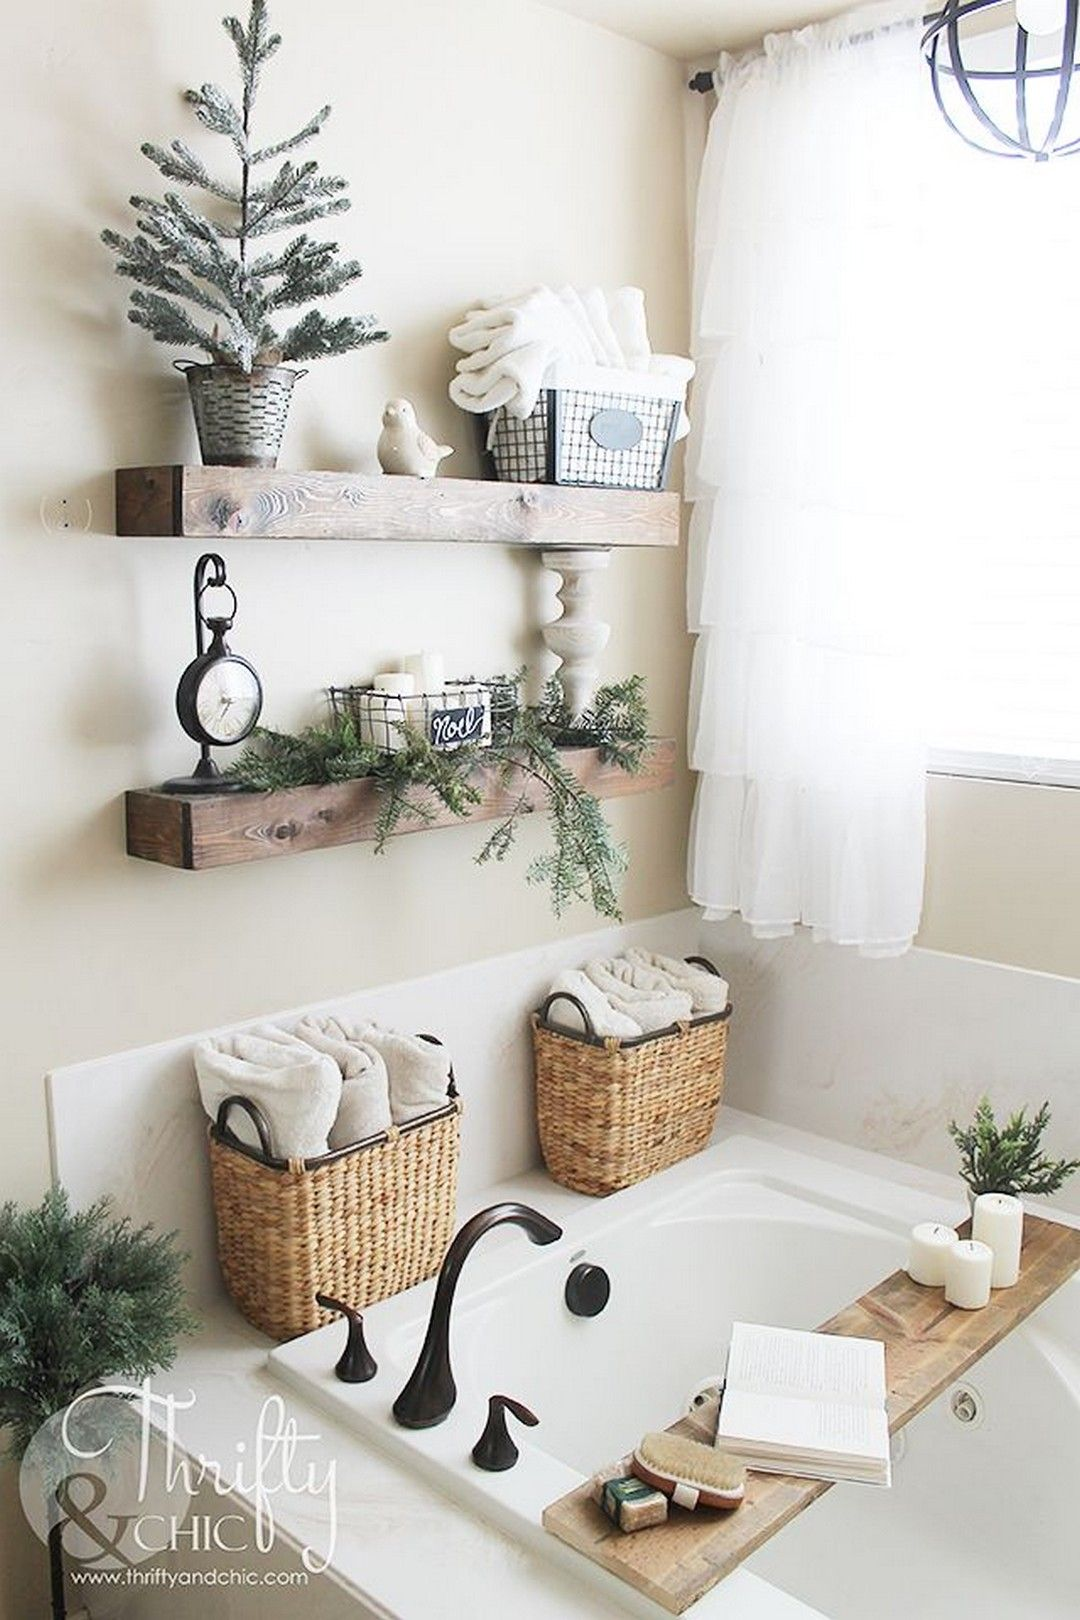 65 Gorgeous Farmhouse Bathroom Decor Ideas Match With Any Home